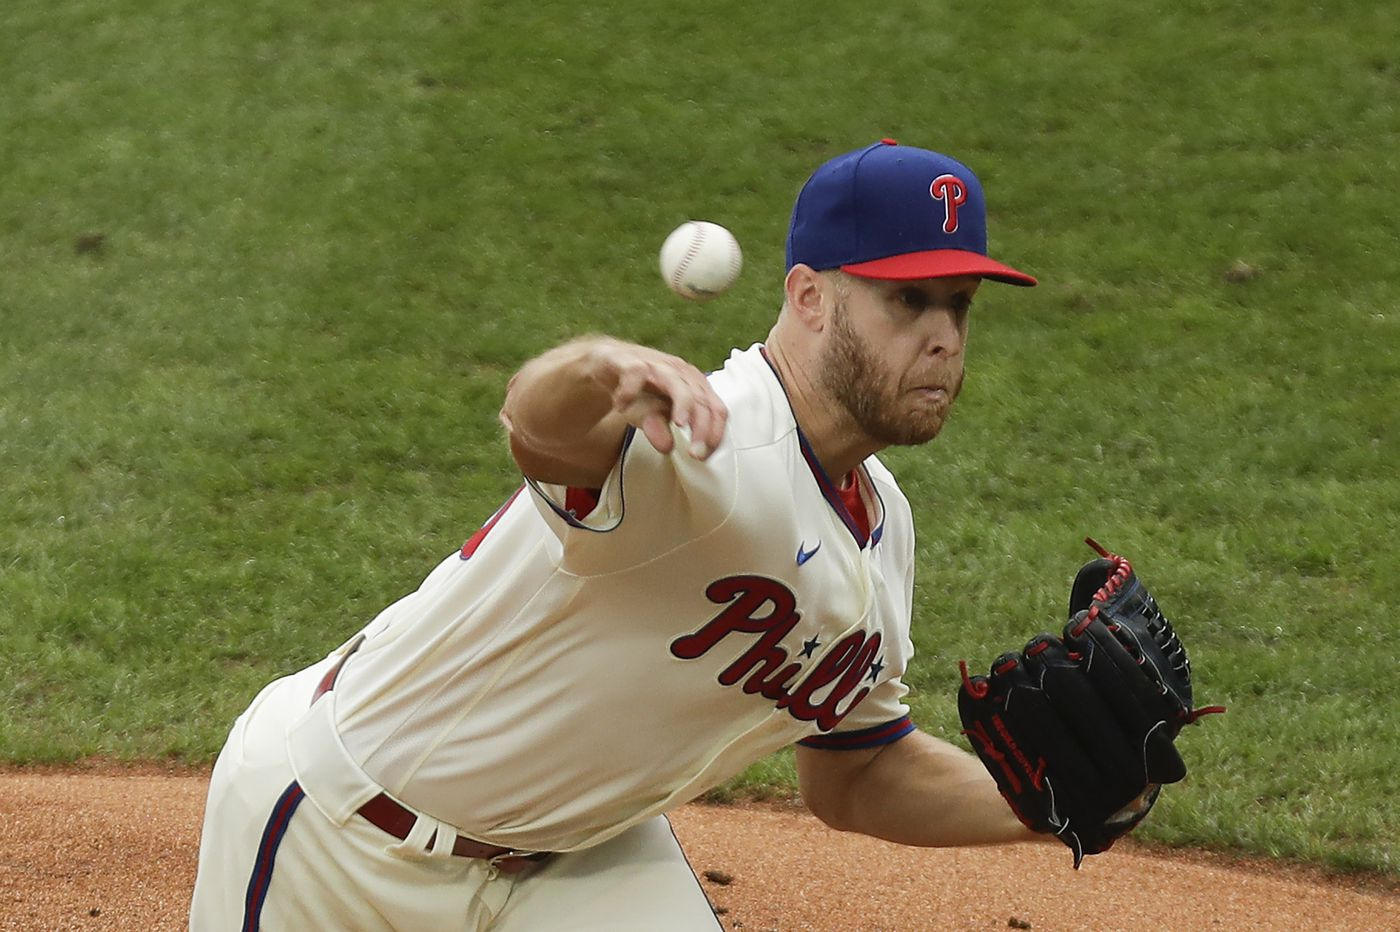 Phillies look like they got it right when they signed Zack Wheeler | Extra Innings